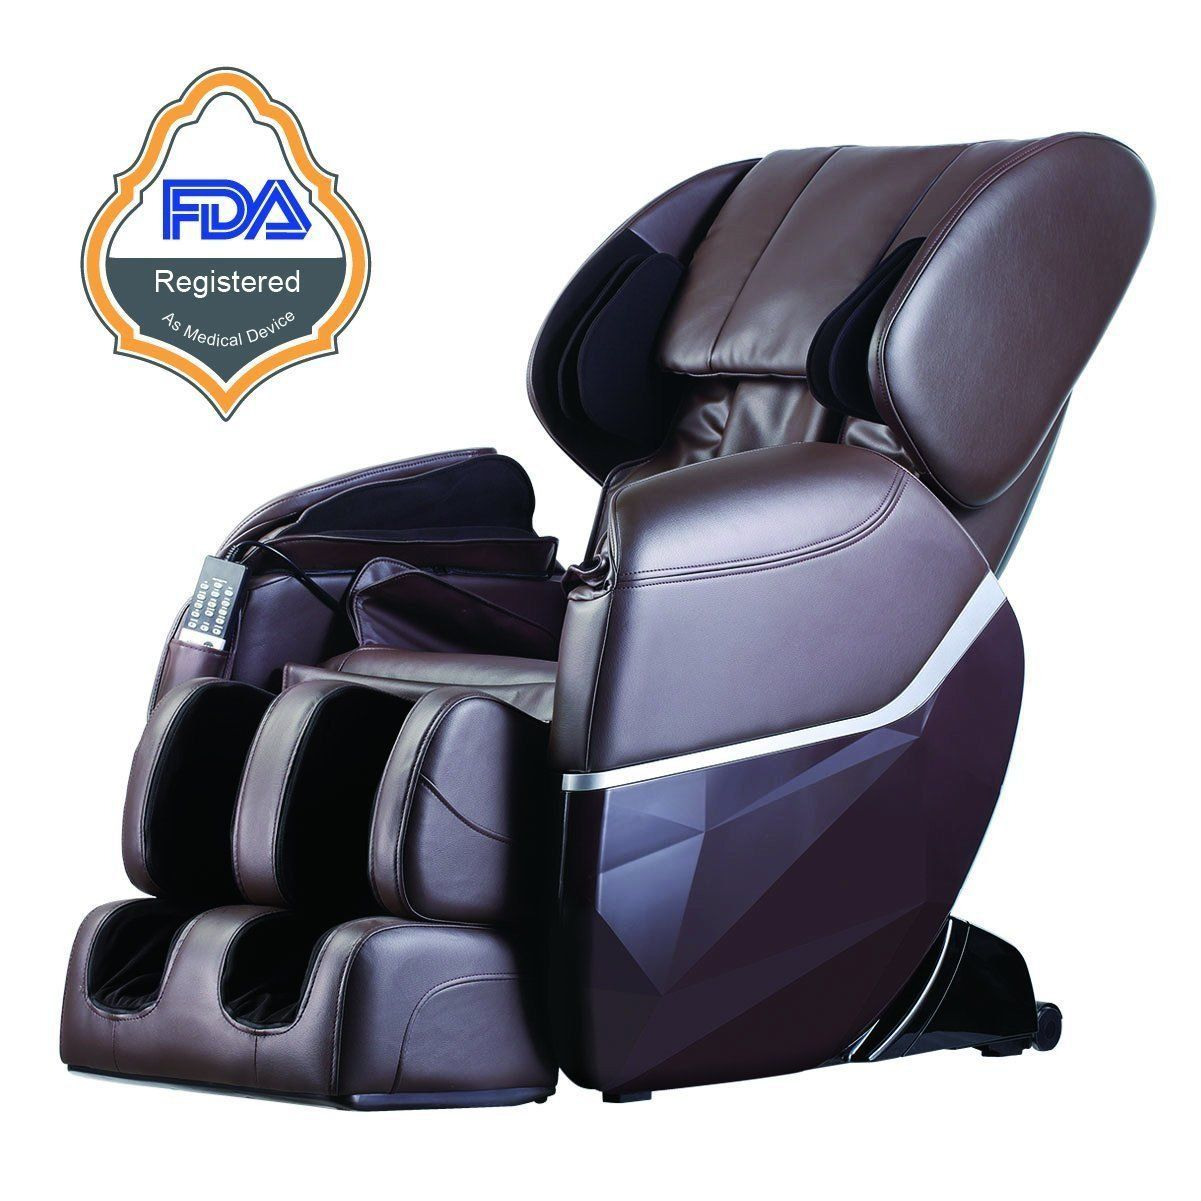 Massage Electric Shiatsu Chair Recliner Body Full Heat